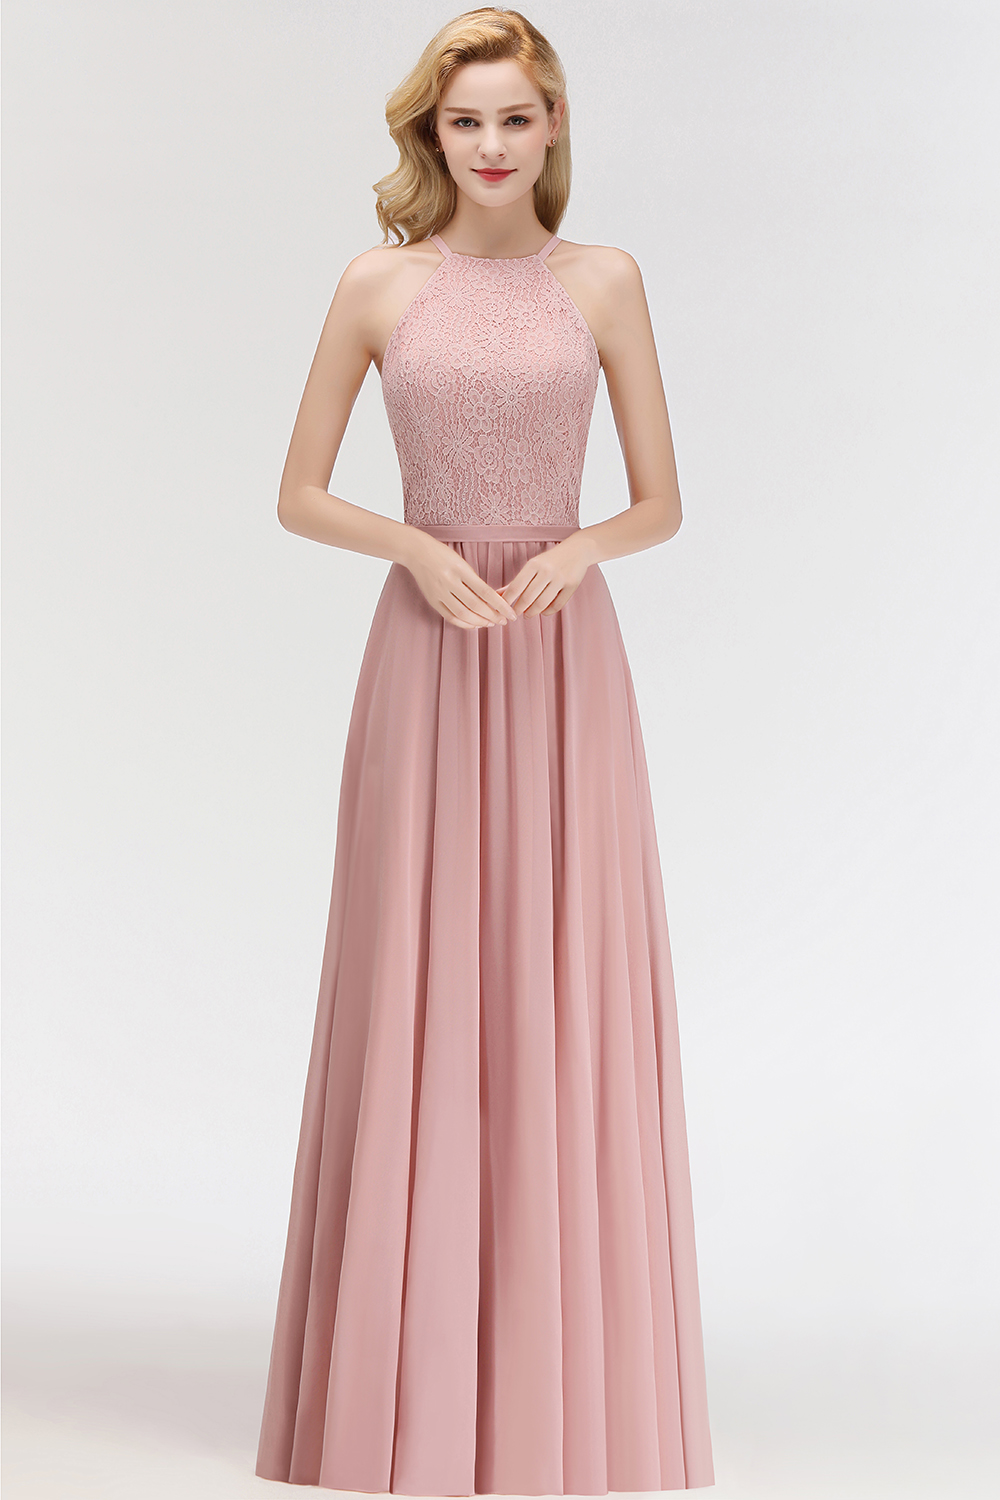 BMbridal Gorgeous High-Neck Halter Lace Affordable Bridesmaid Dress with Ruffle